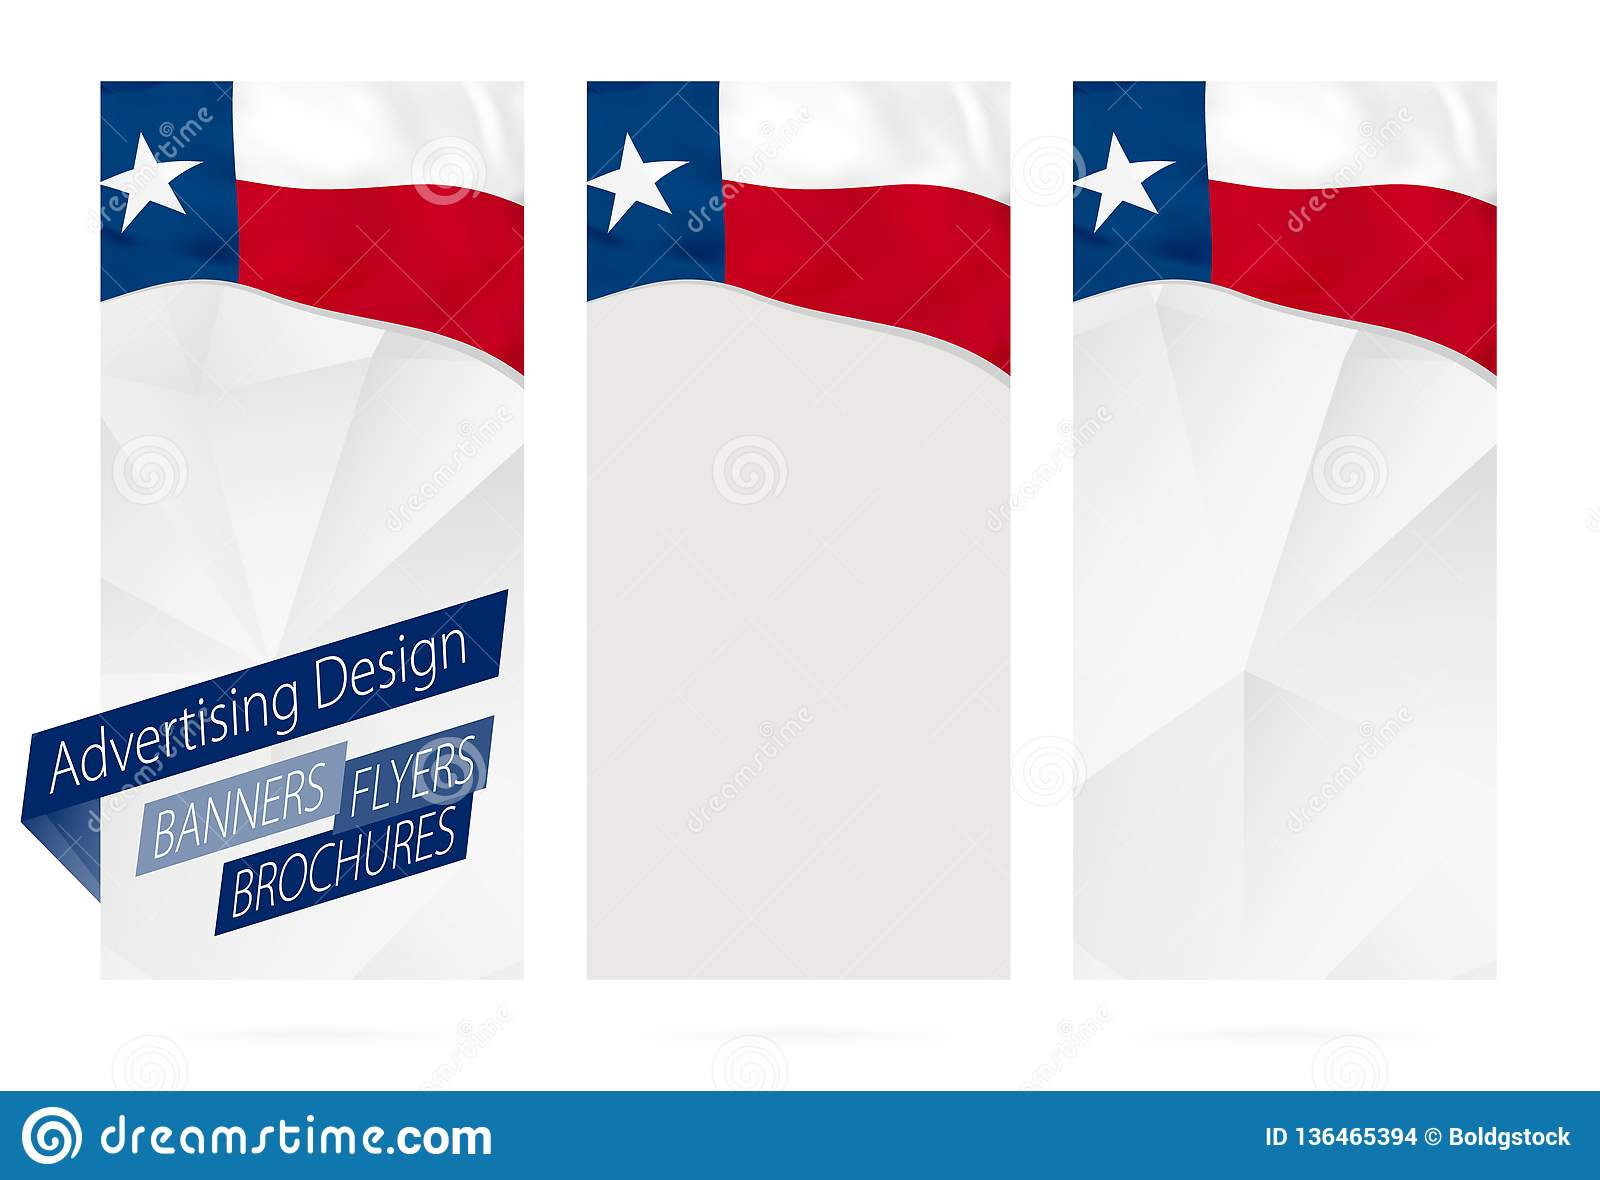 Design Of Banners, Flyers, Brochures With Texas State Flag Stock